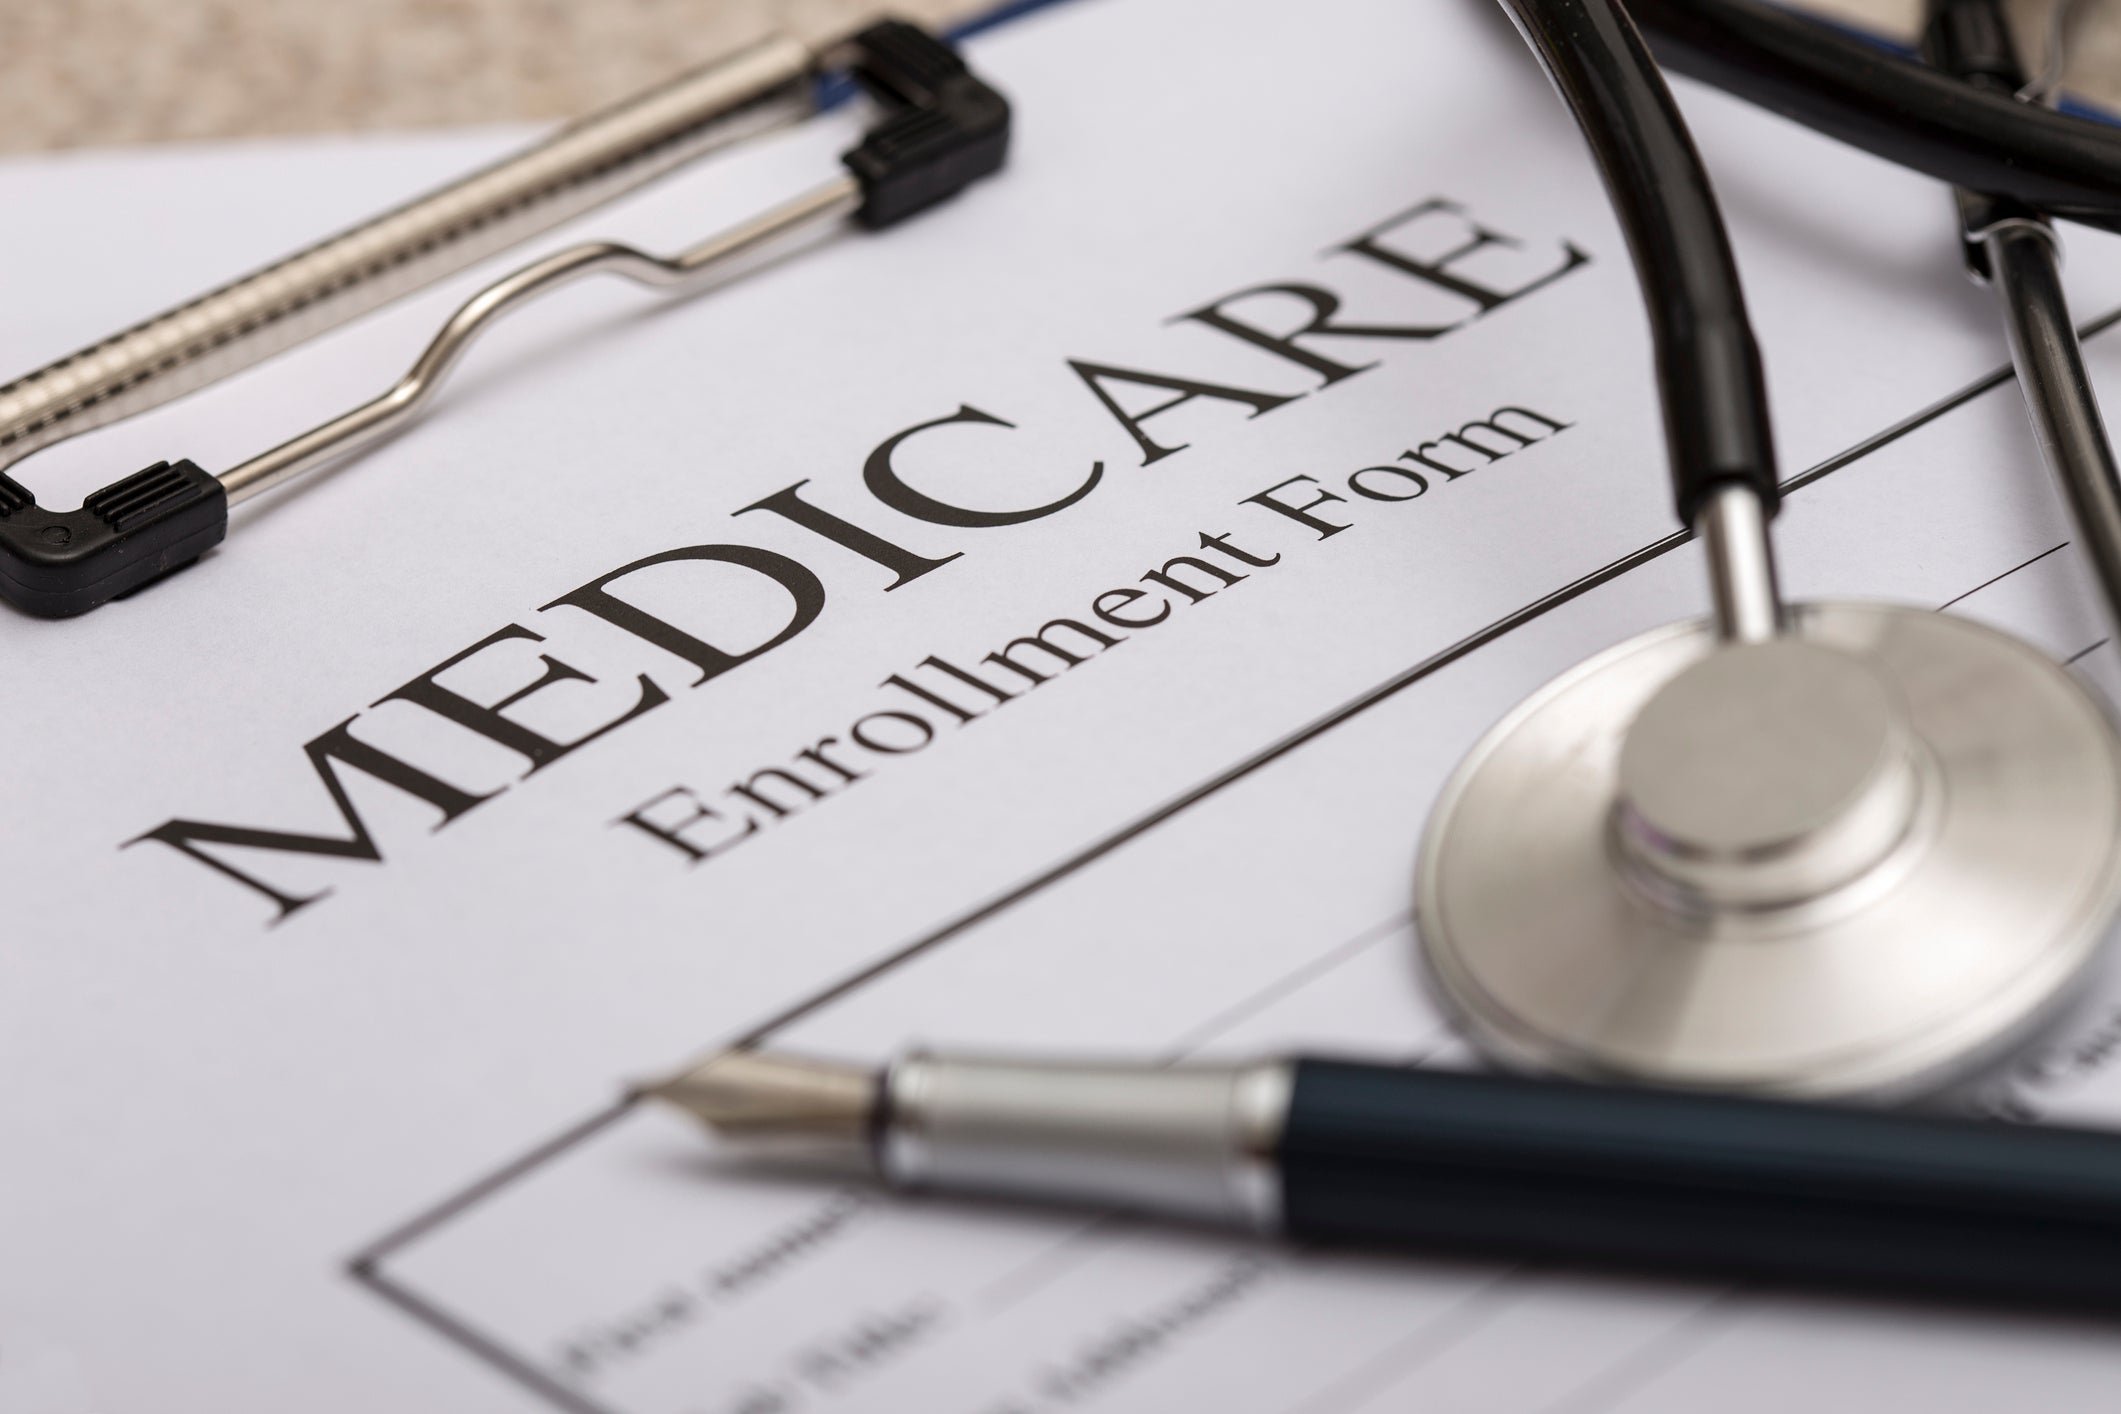 Do I Need Medicare if I Have Insurance? | The Motley Fool Social Security Medicare Application Form on canadian passport renewal application form, social security income tax form, social security benefit application,